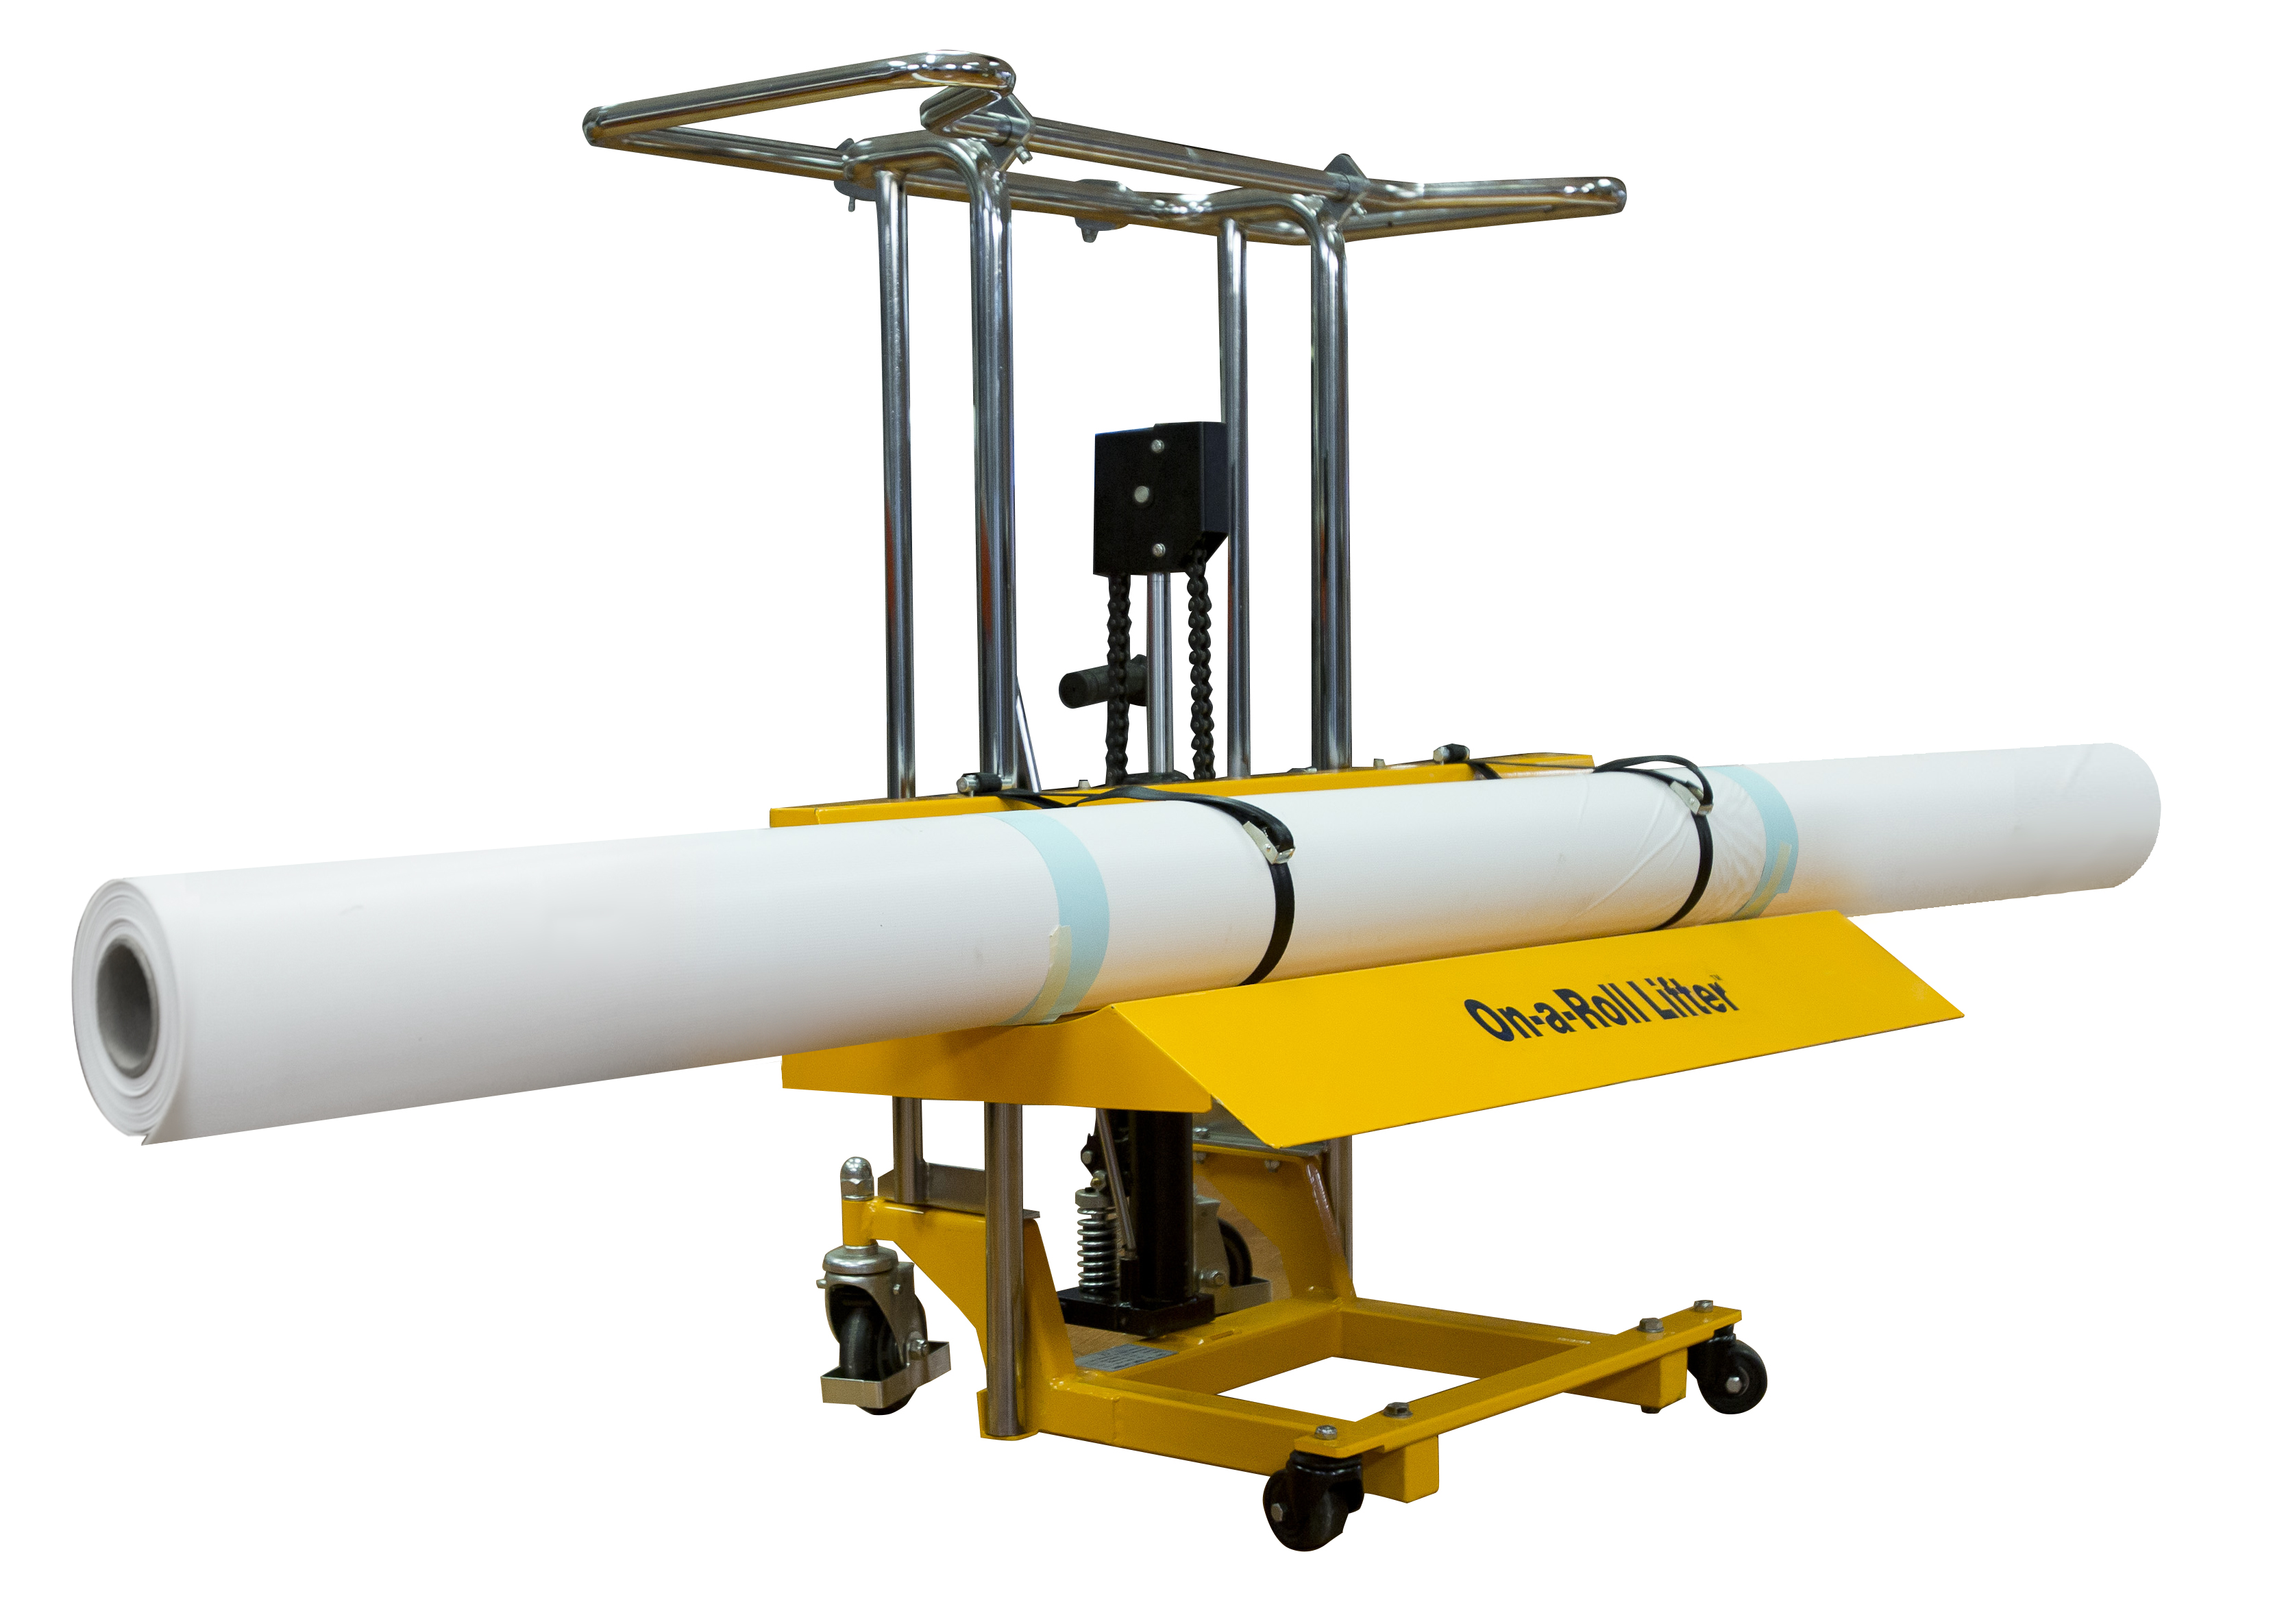 Ergonomic Lifting Of Rolls : On a roll lifter standard plus models foster